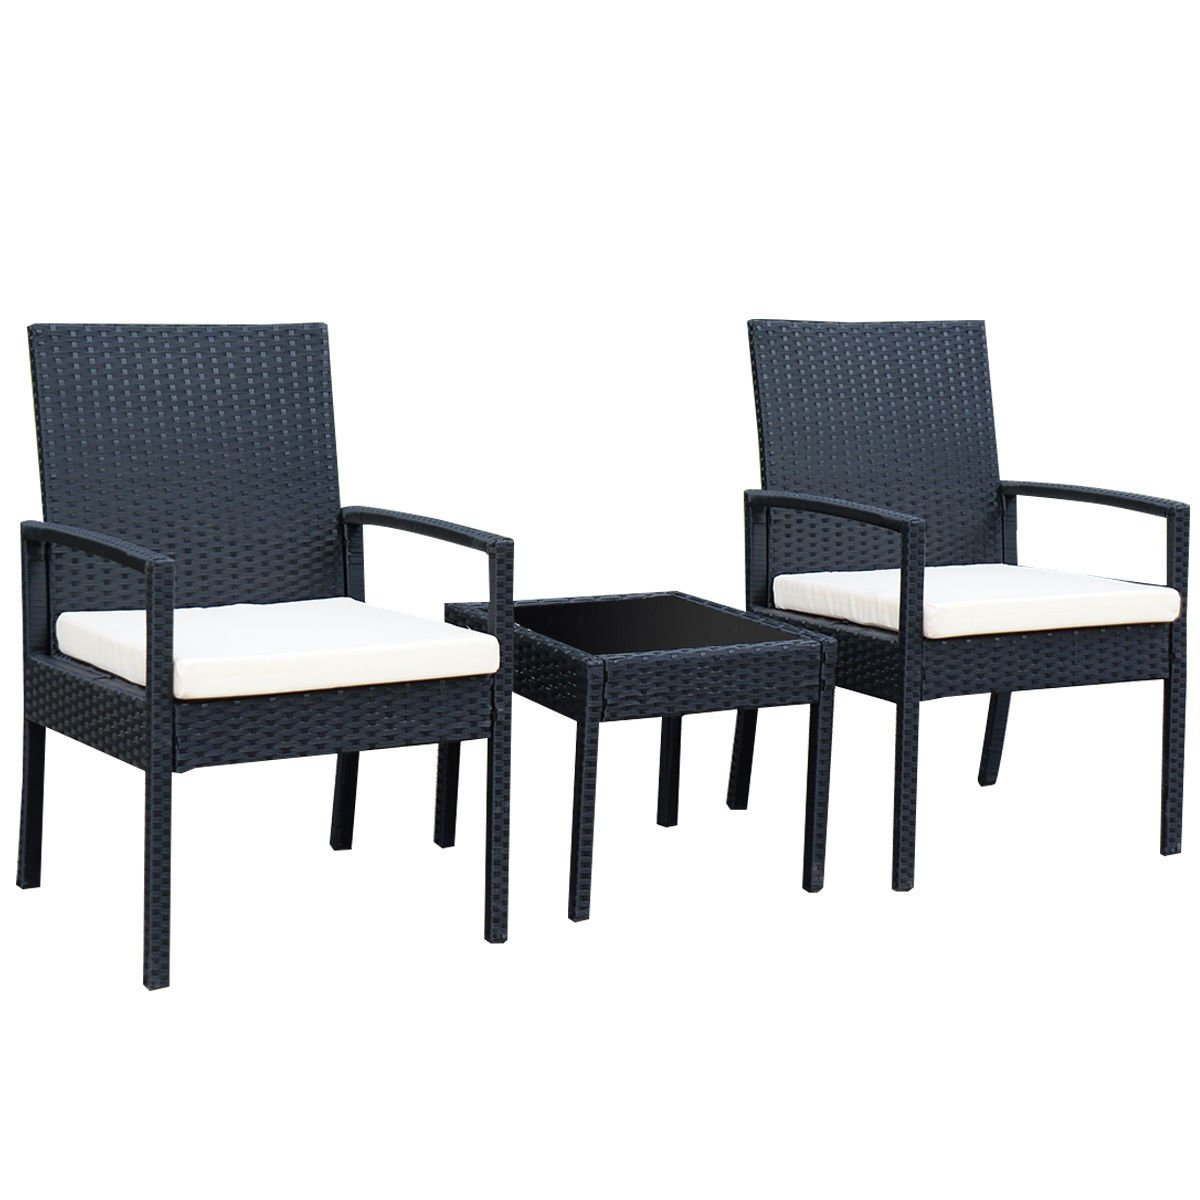 Tangkula 3 Piece Cushioned Outdoor Rattan Patio Furniture Set